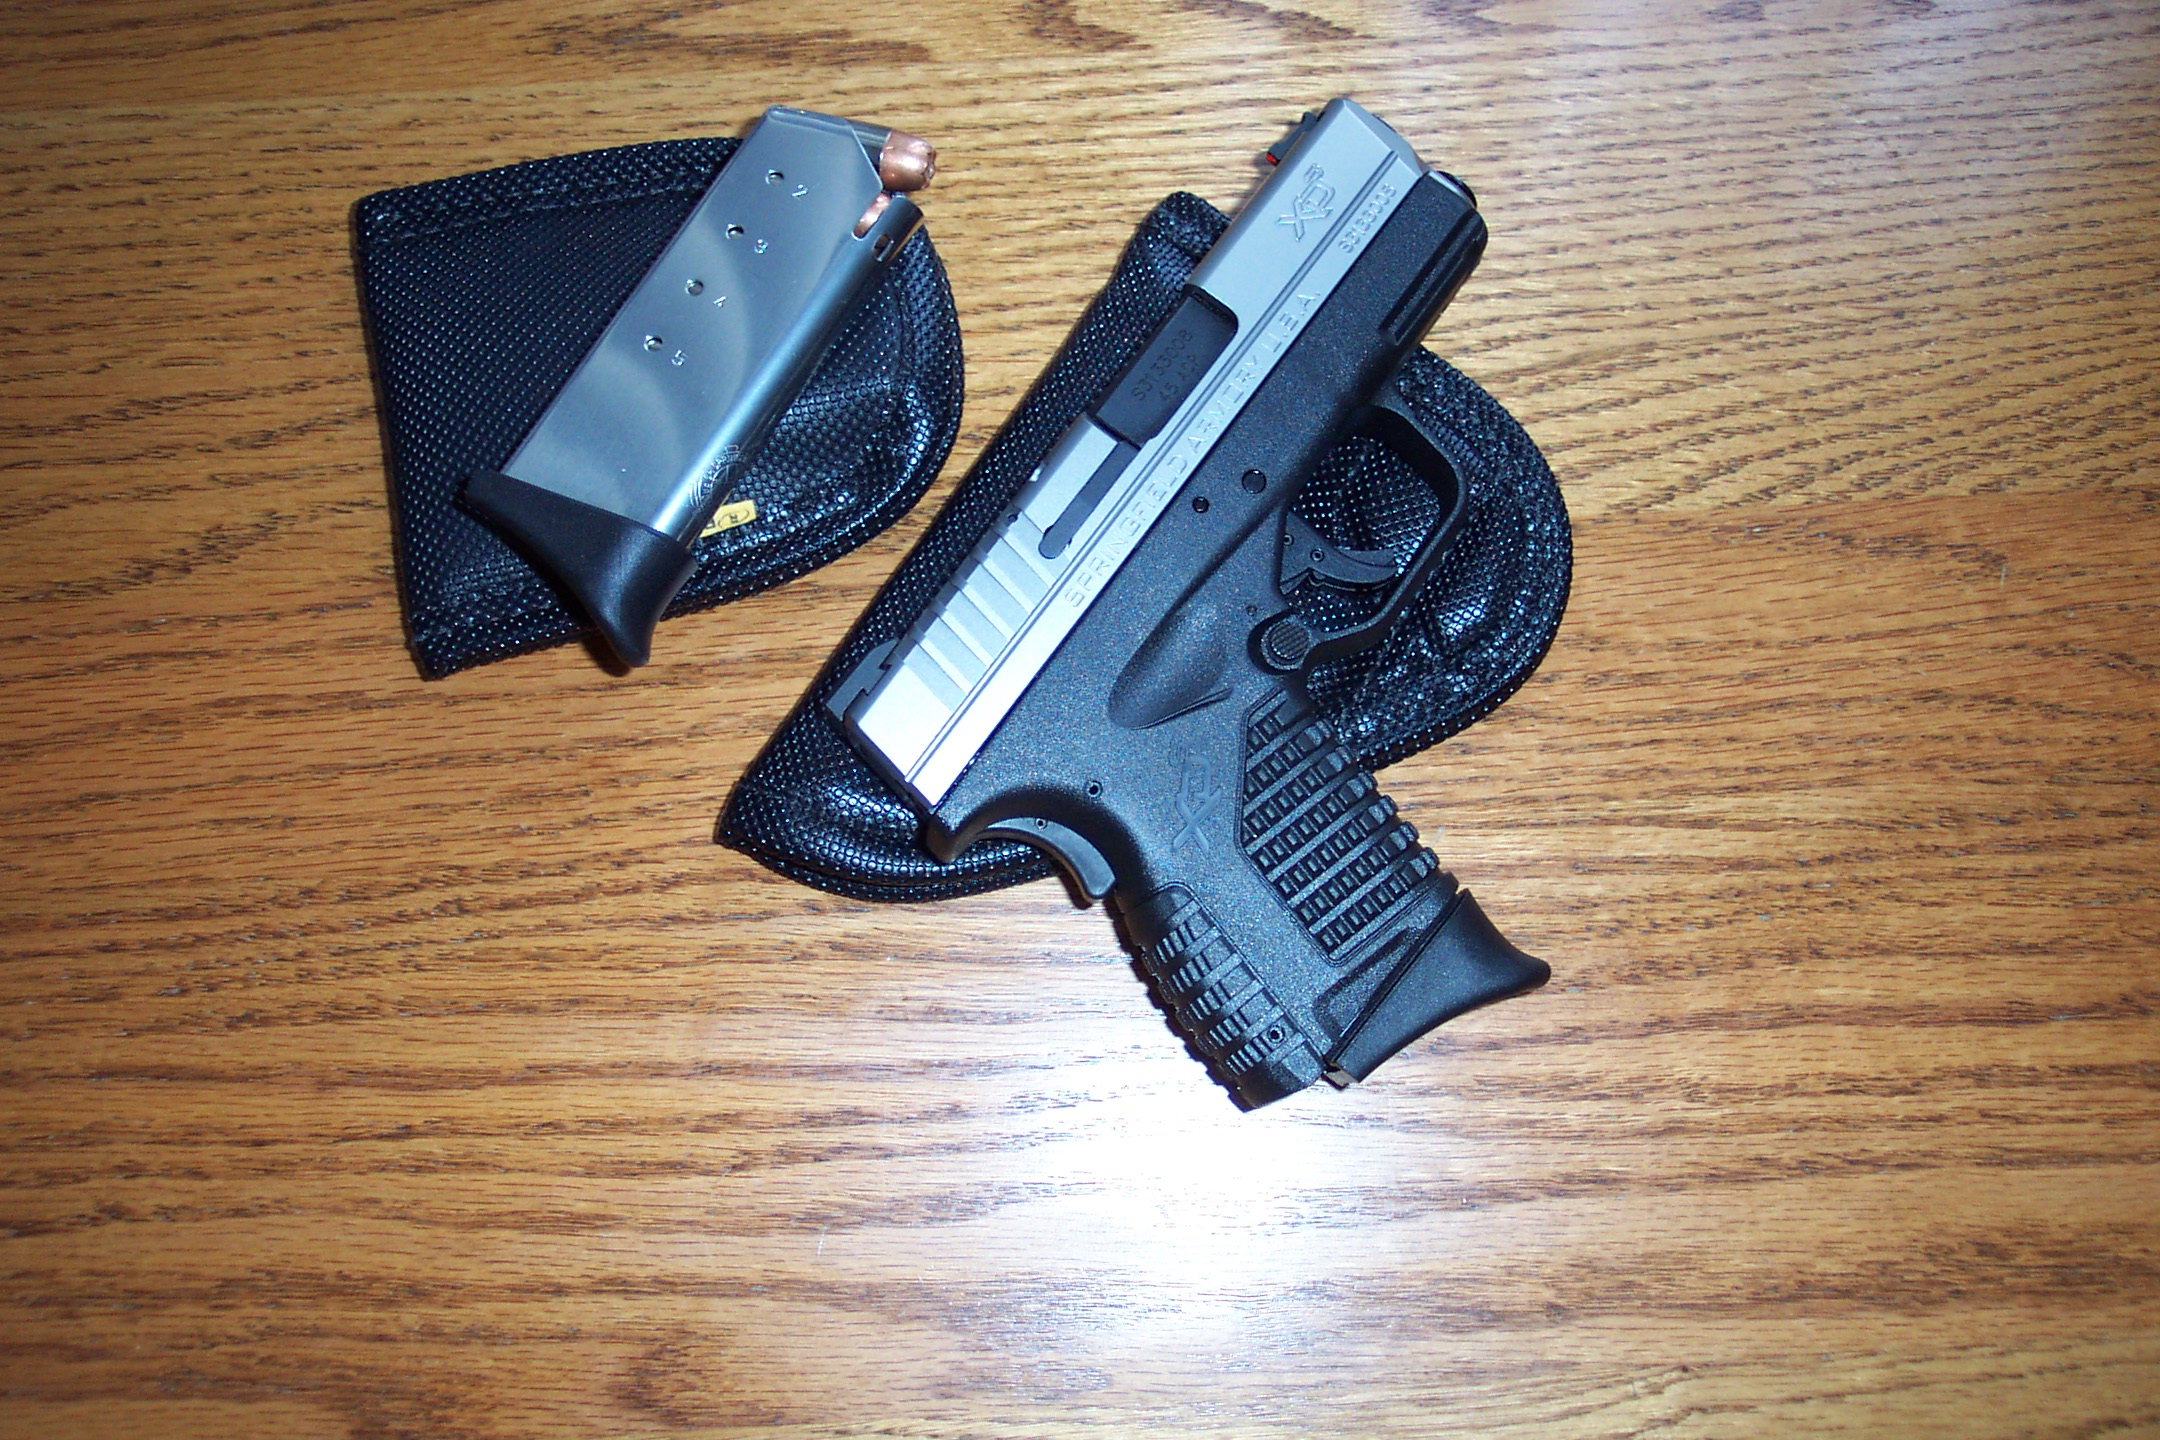 Ankle Holster For Springfield Xds 45 Added a New Springfield Xds-45